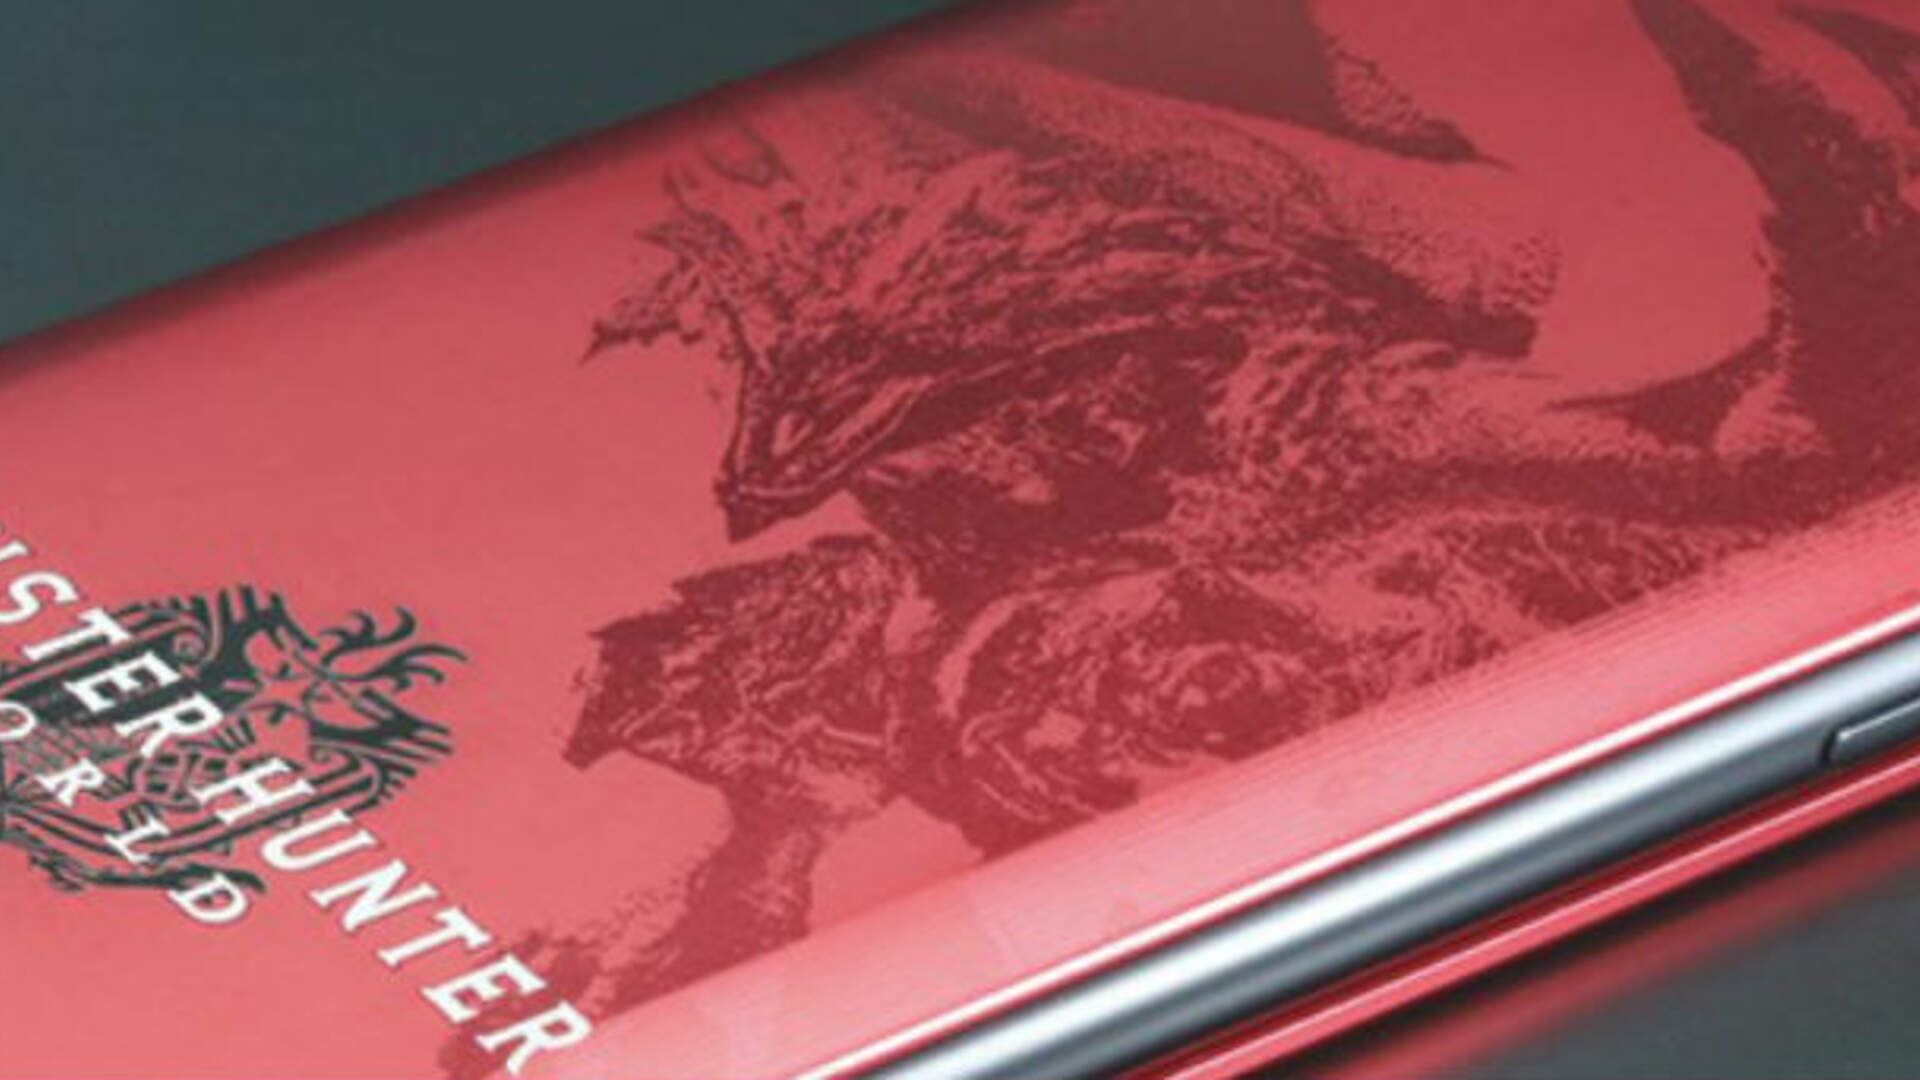 Duralumin iPhone Cases With Monster Hunter: World Designs Coming Soon